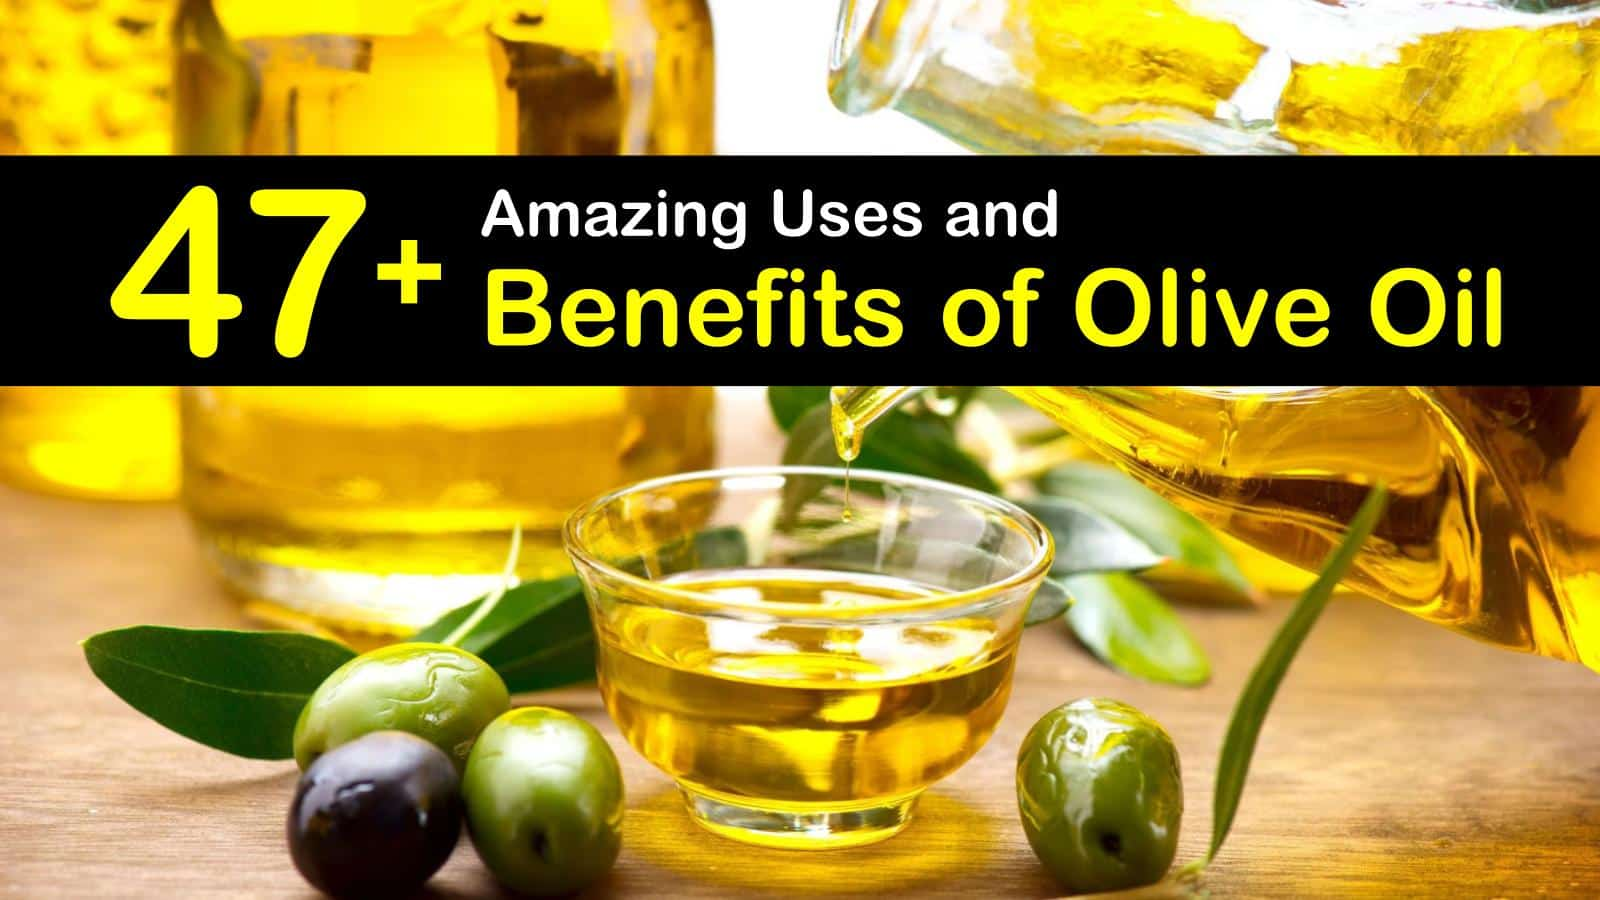 47+ amazing uses and benefits of olive oil